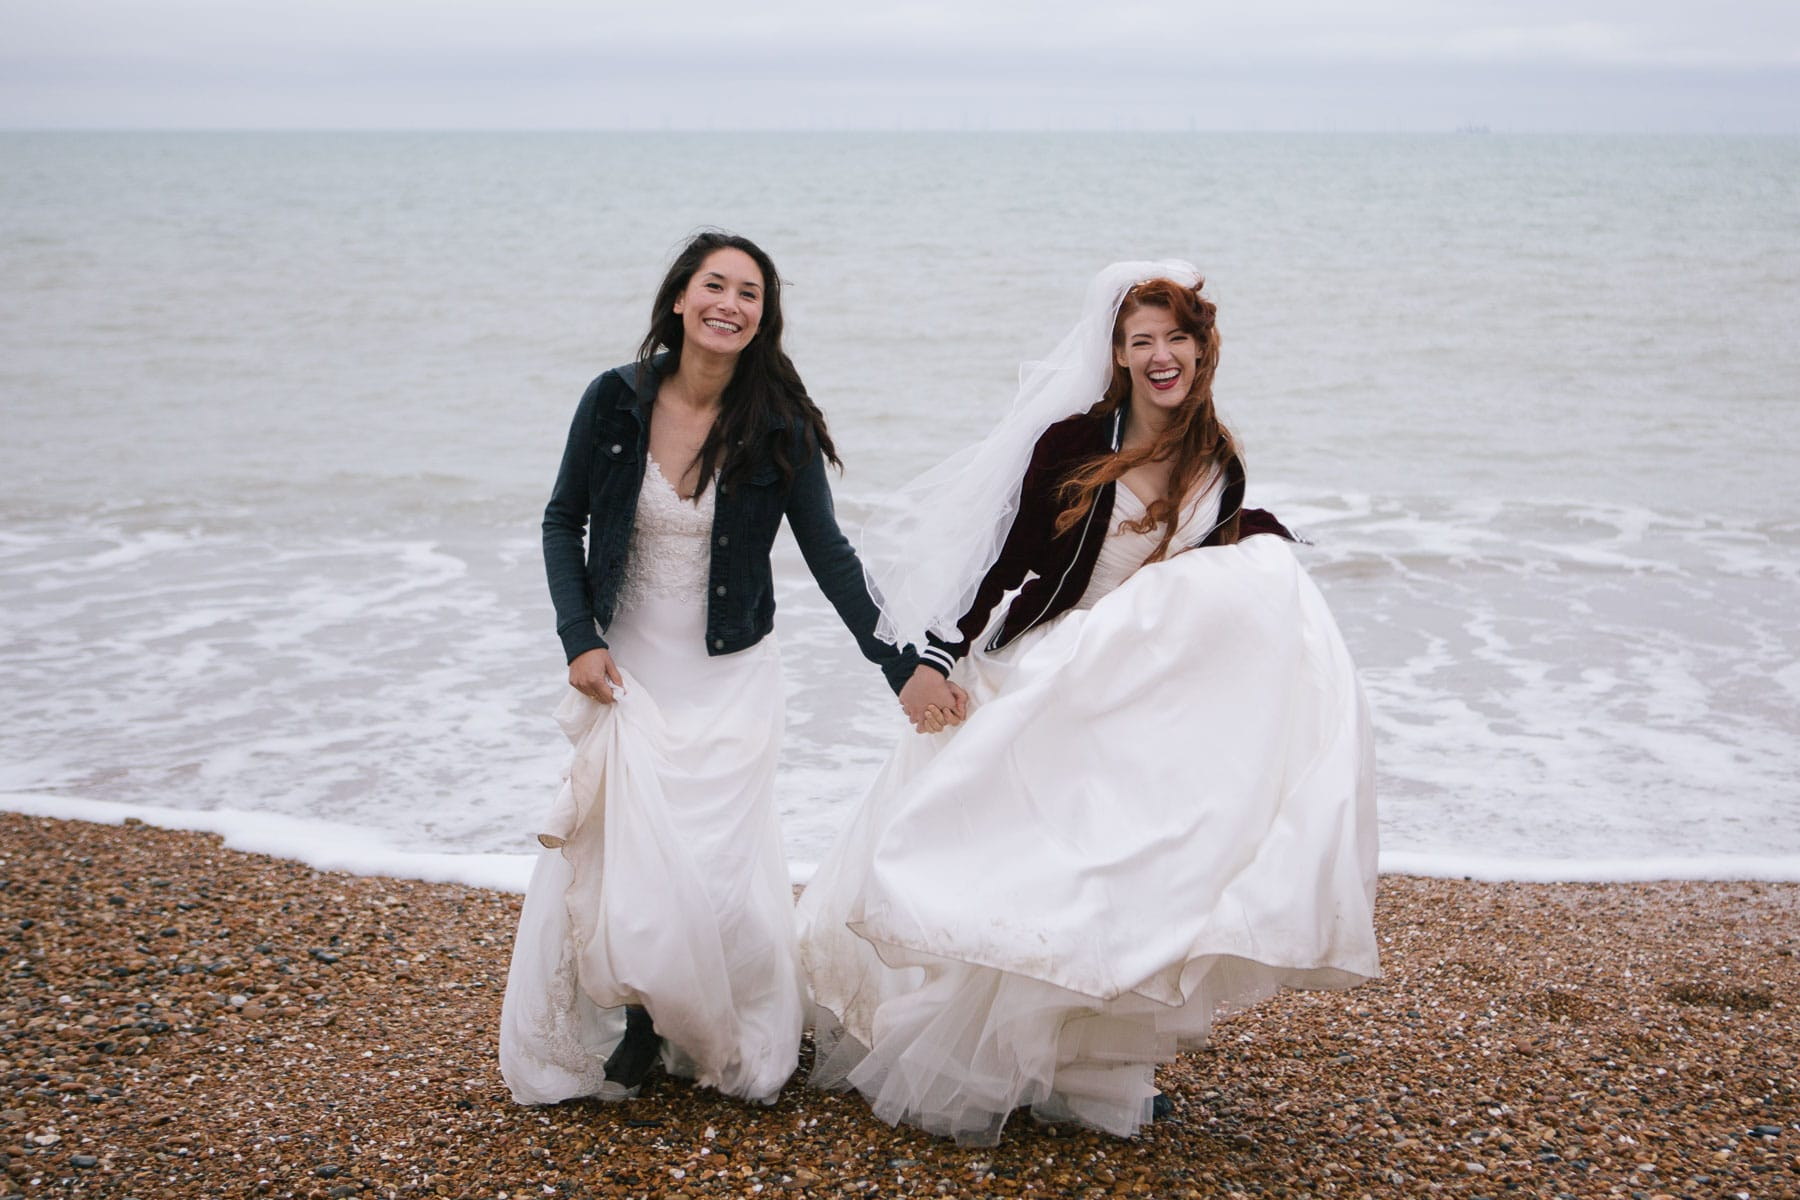 Lesbian brides on Brighton beach wearing gowns and leather jackets